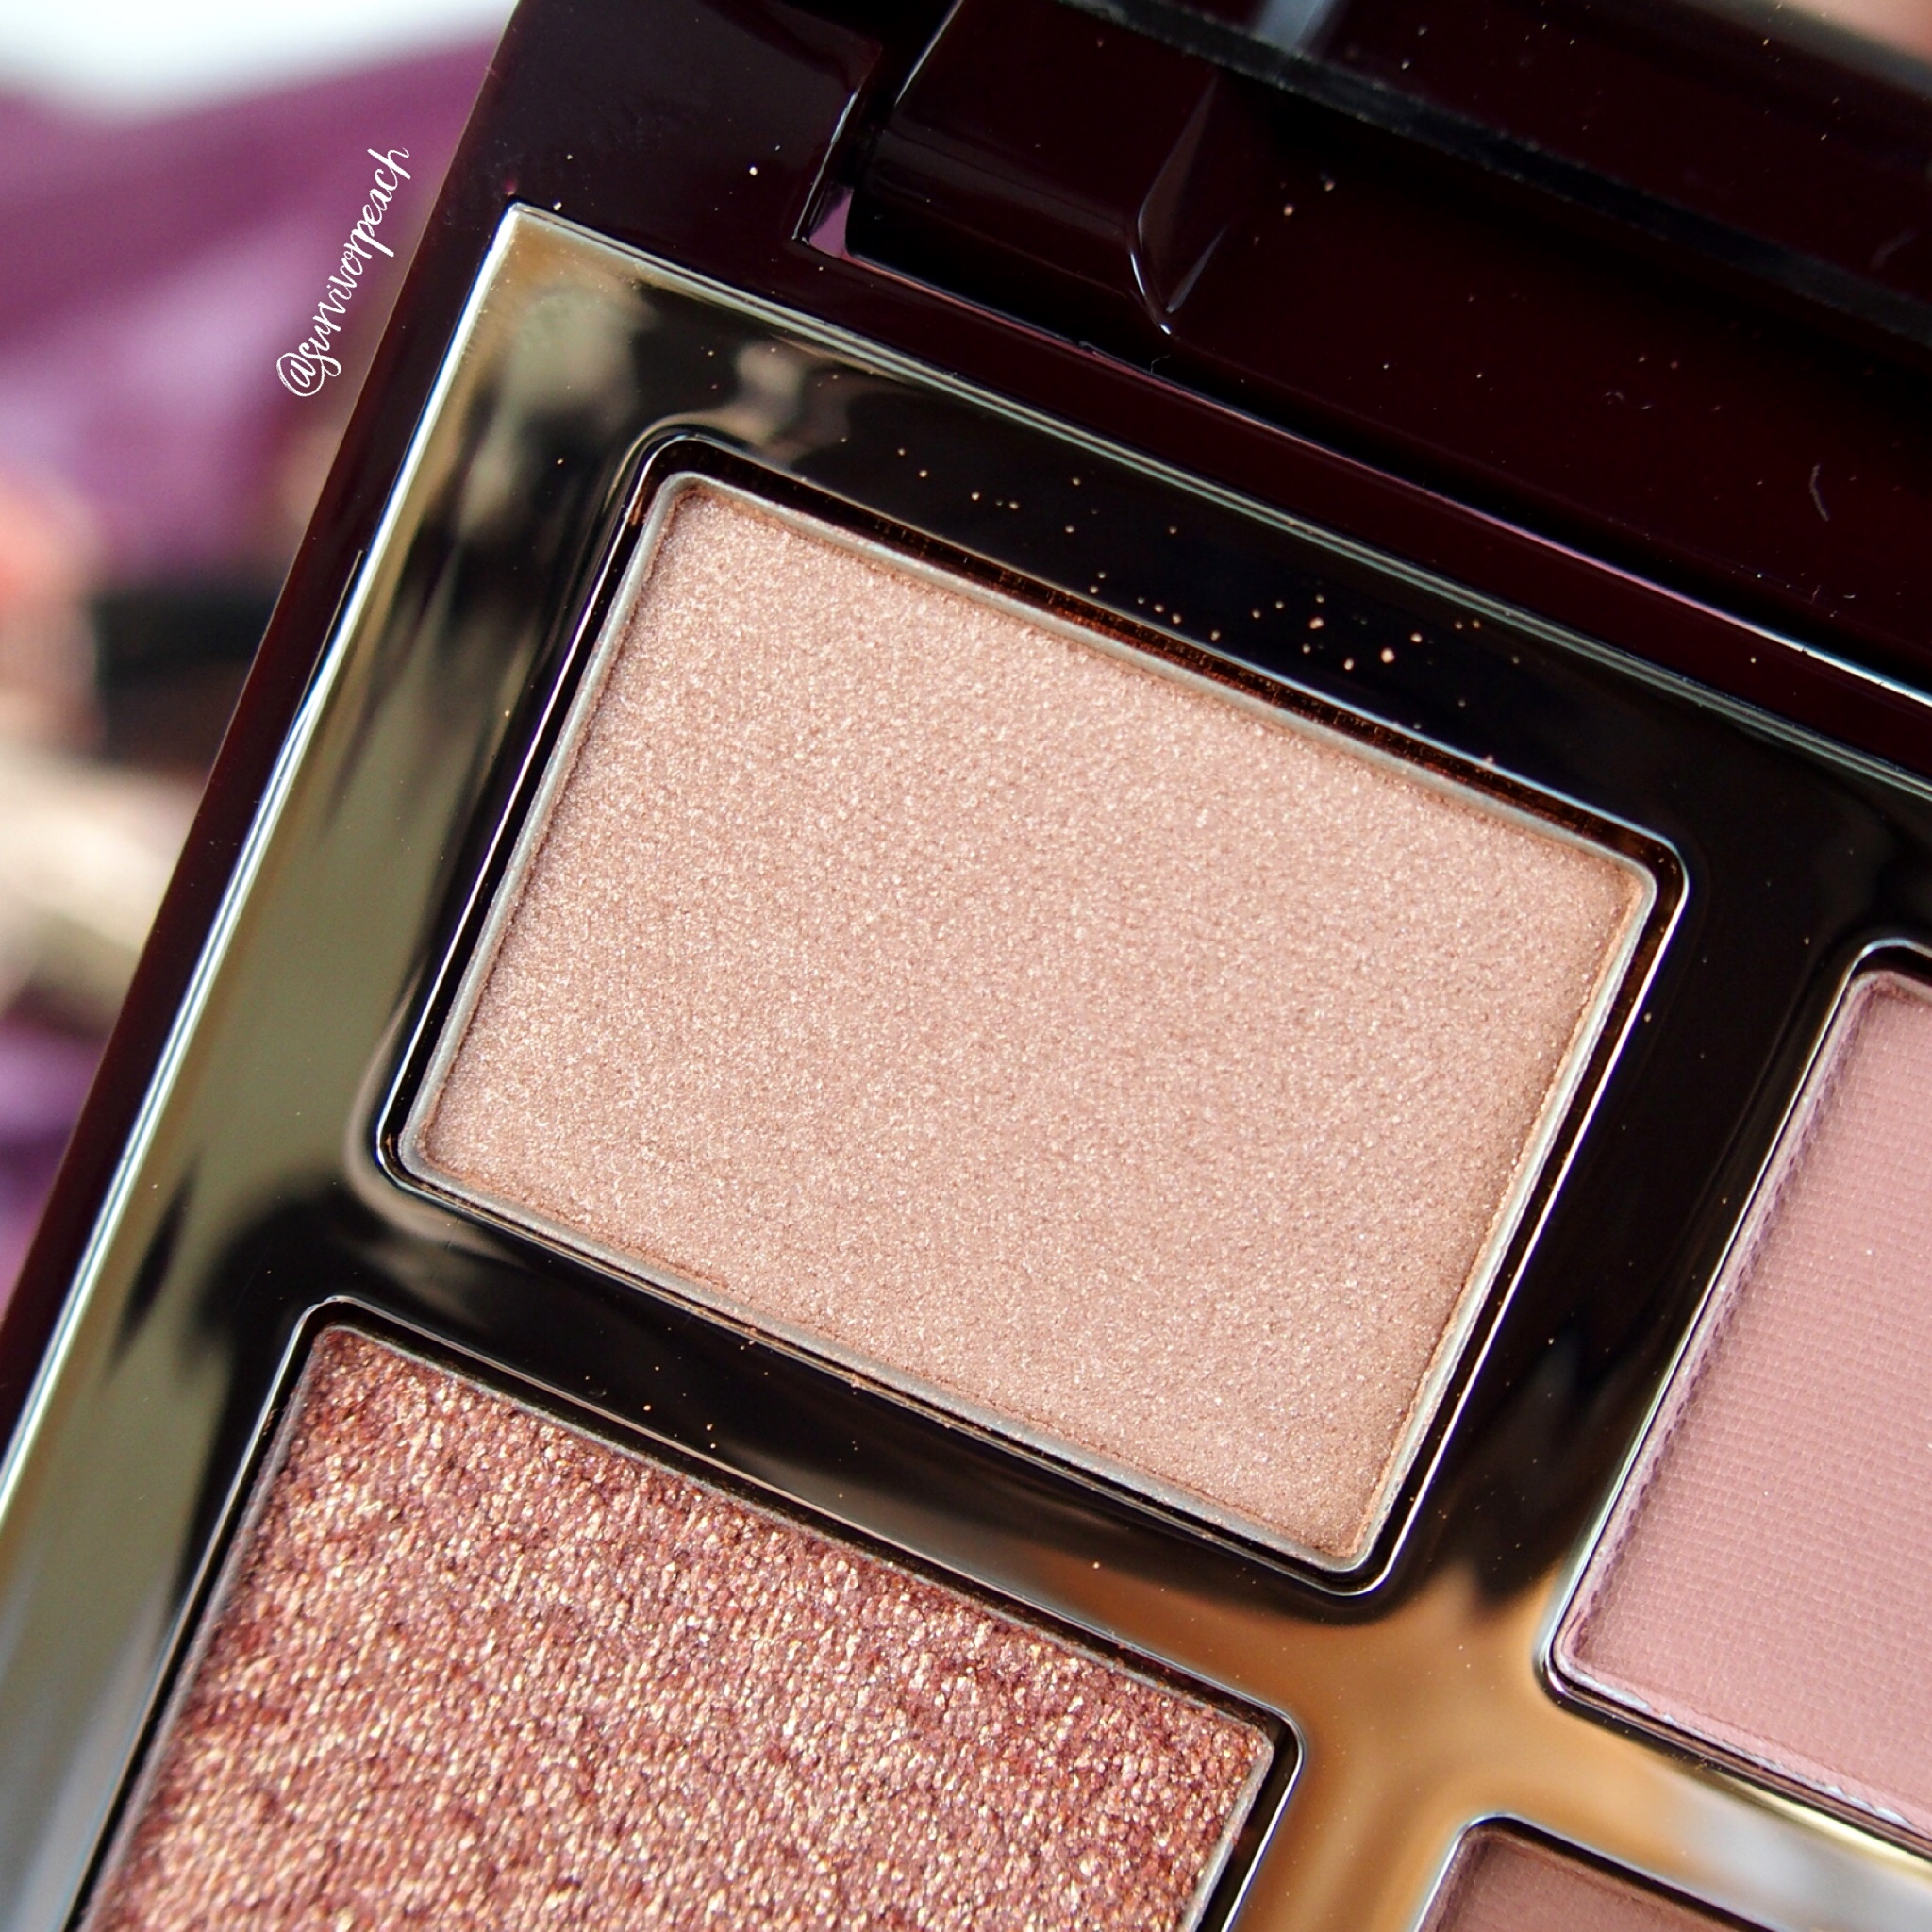 Charlotte Tilbury Pillowtalk Eyeshadow palette